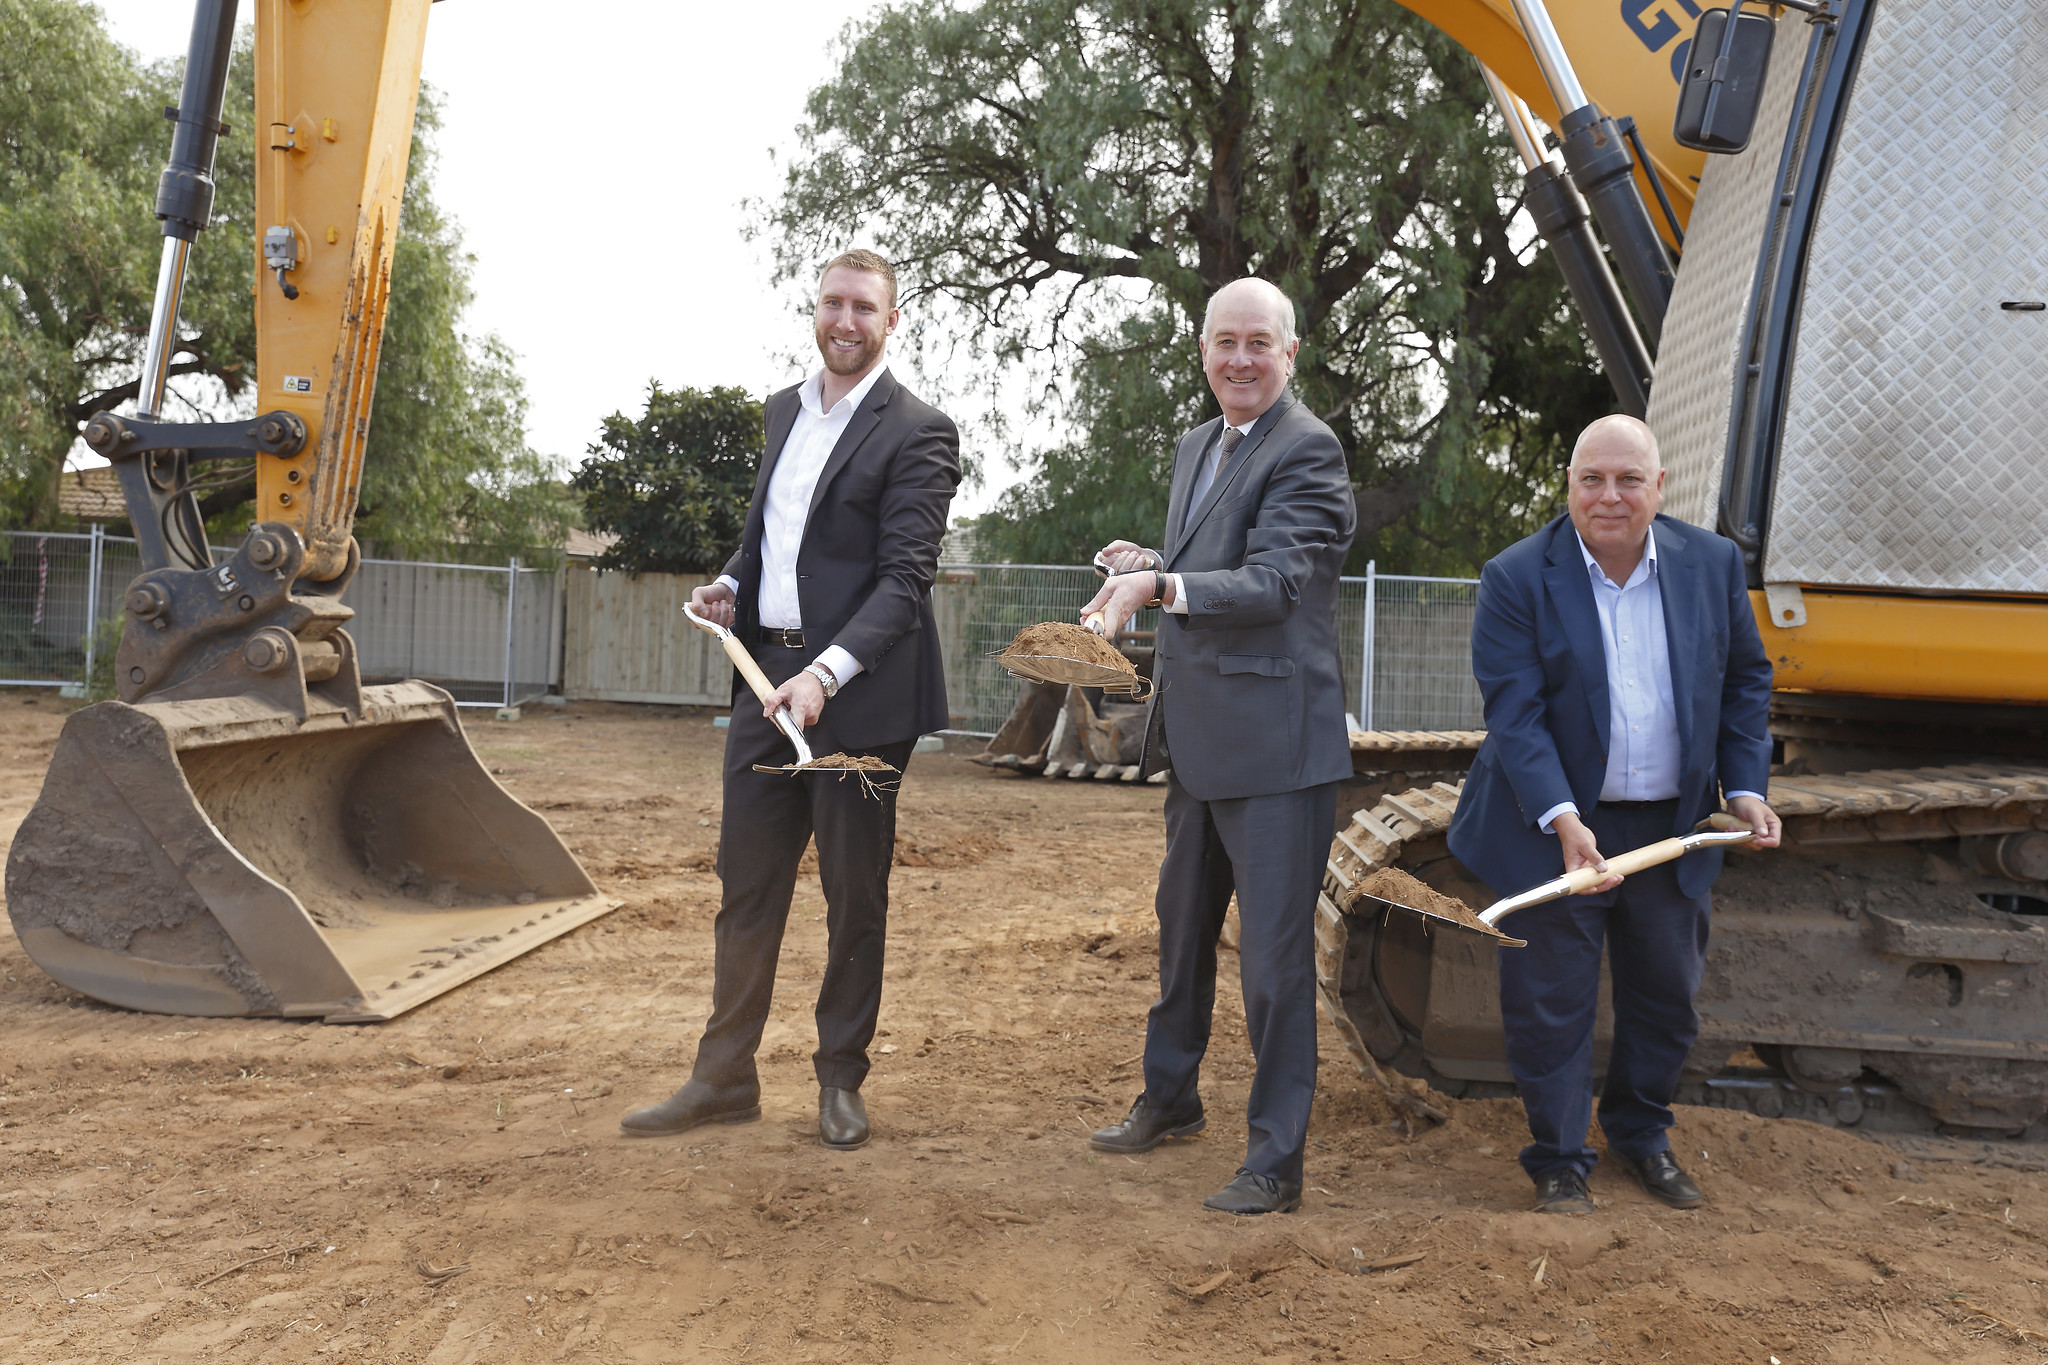 Unison launched New $30m social and affordable housing project for Werribee.